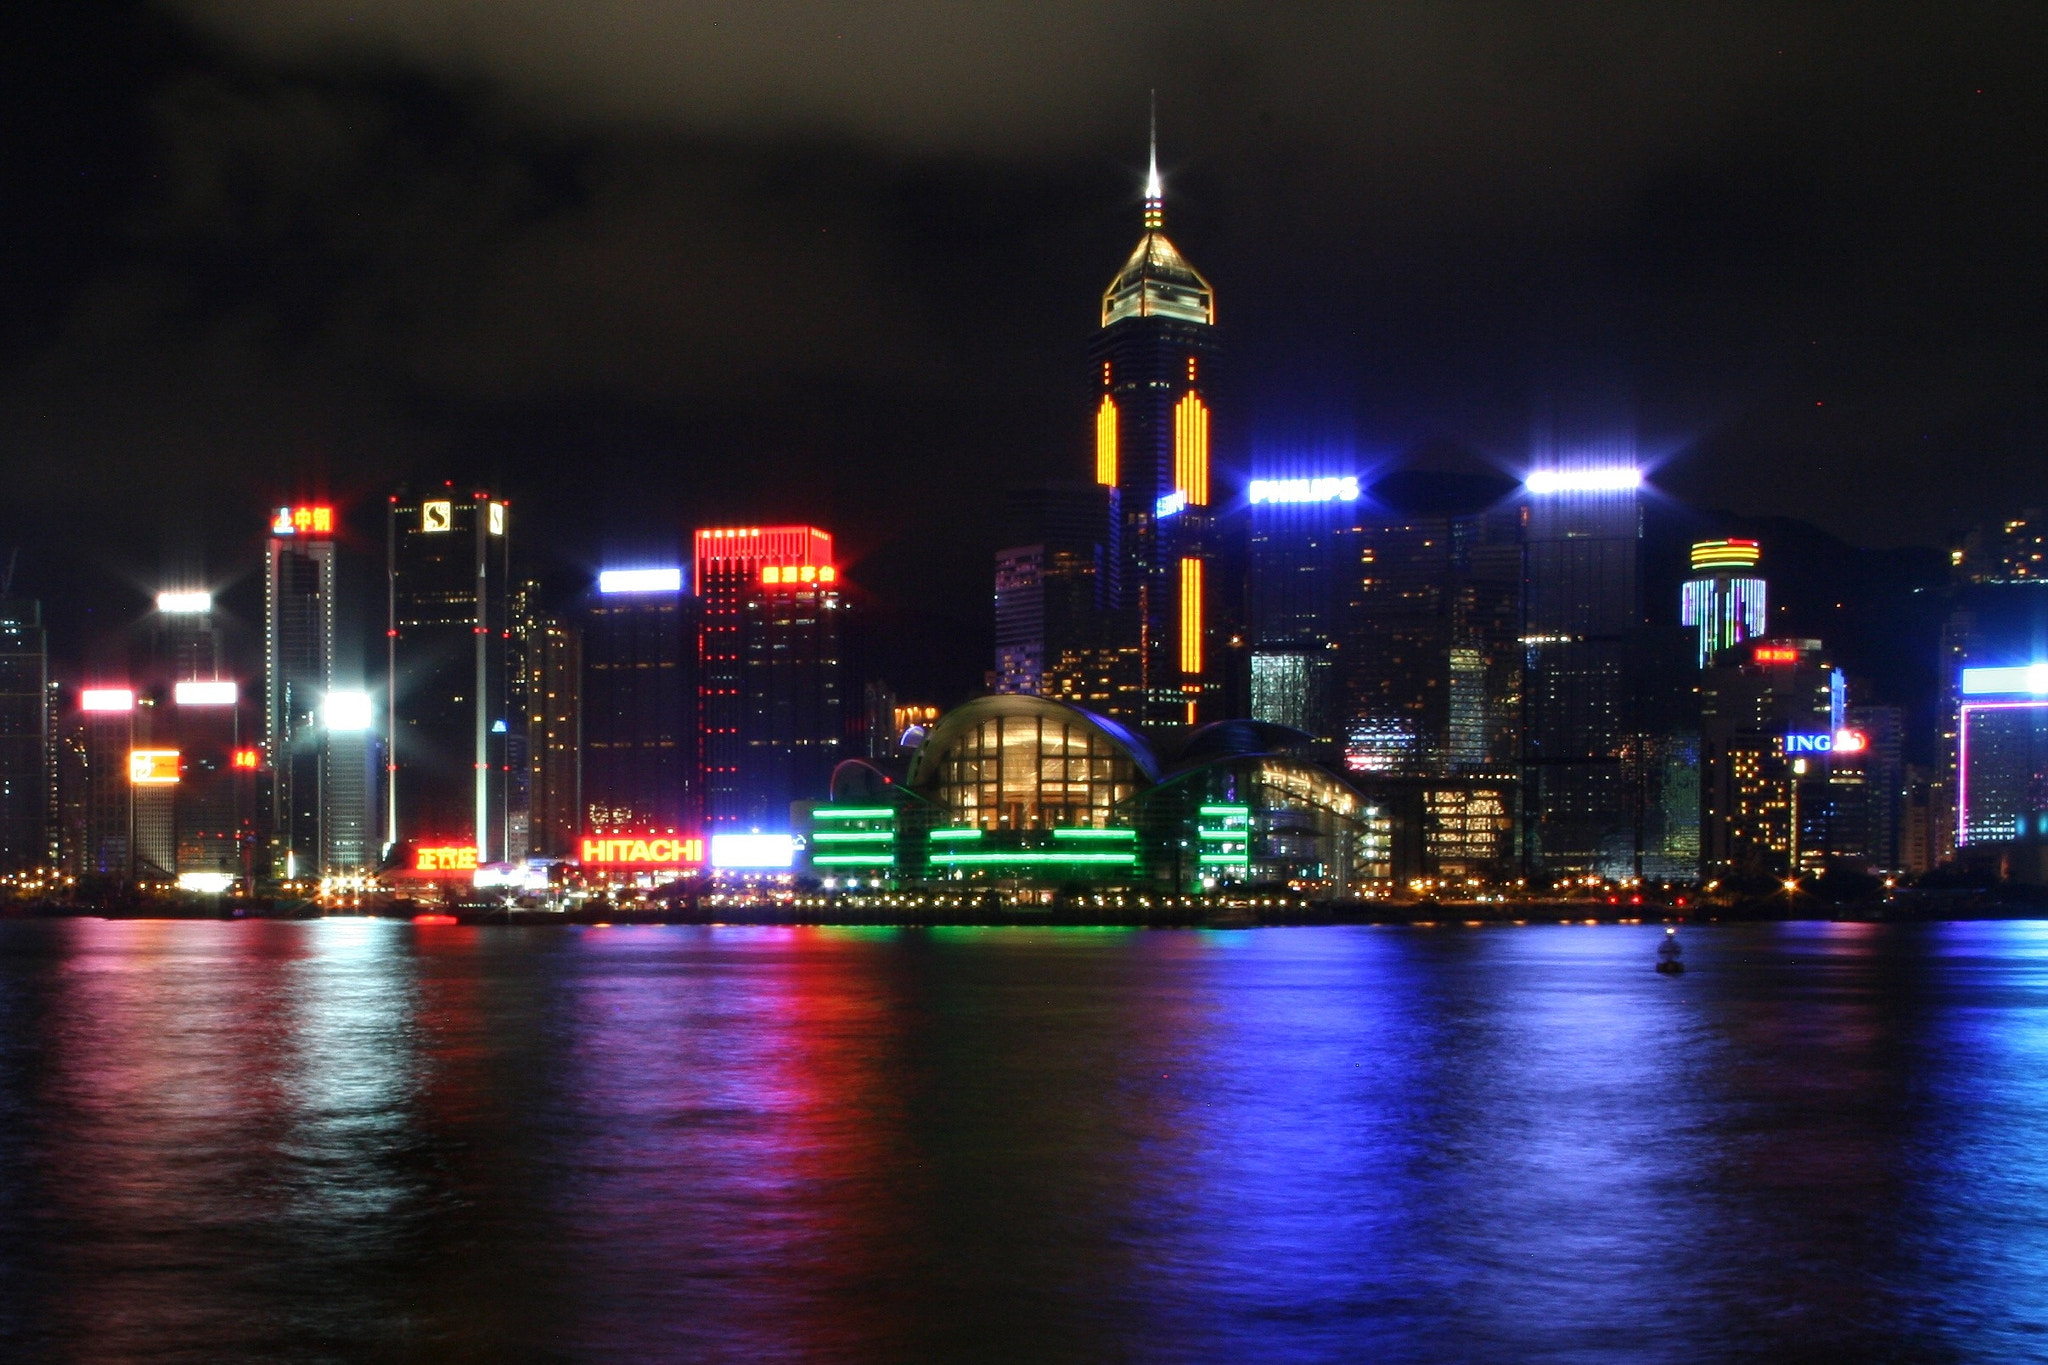 Photograph Hong Kong riverfront  by Rachel O'Connor on 500px